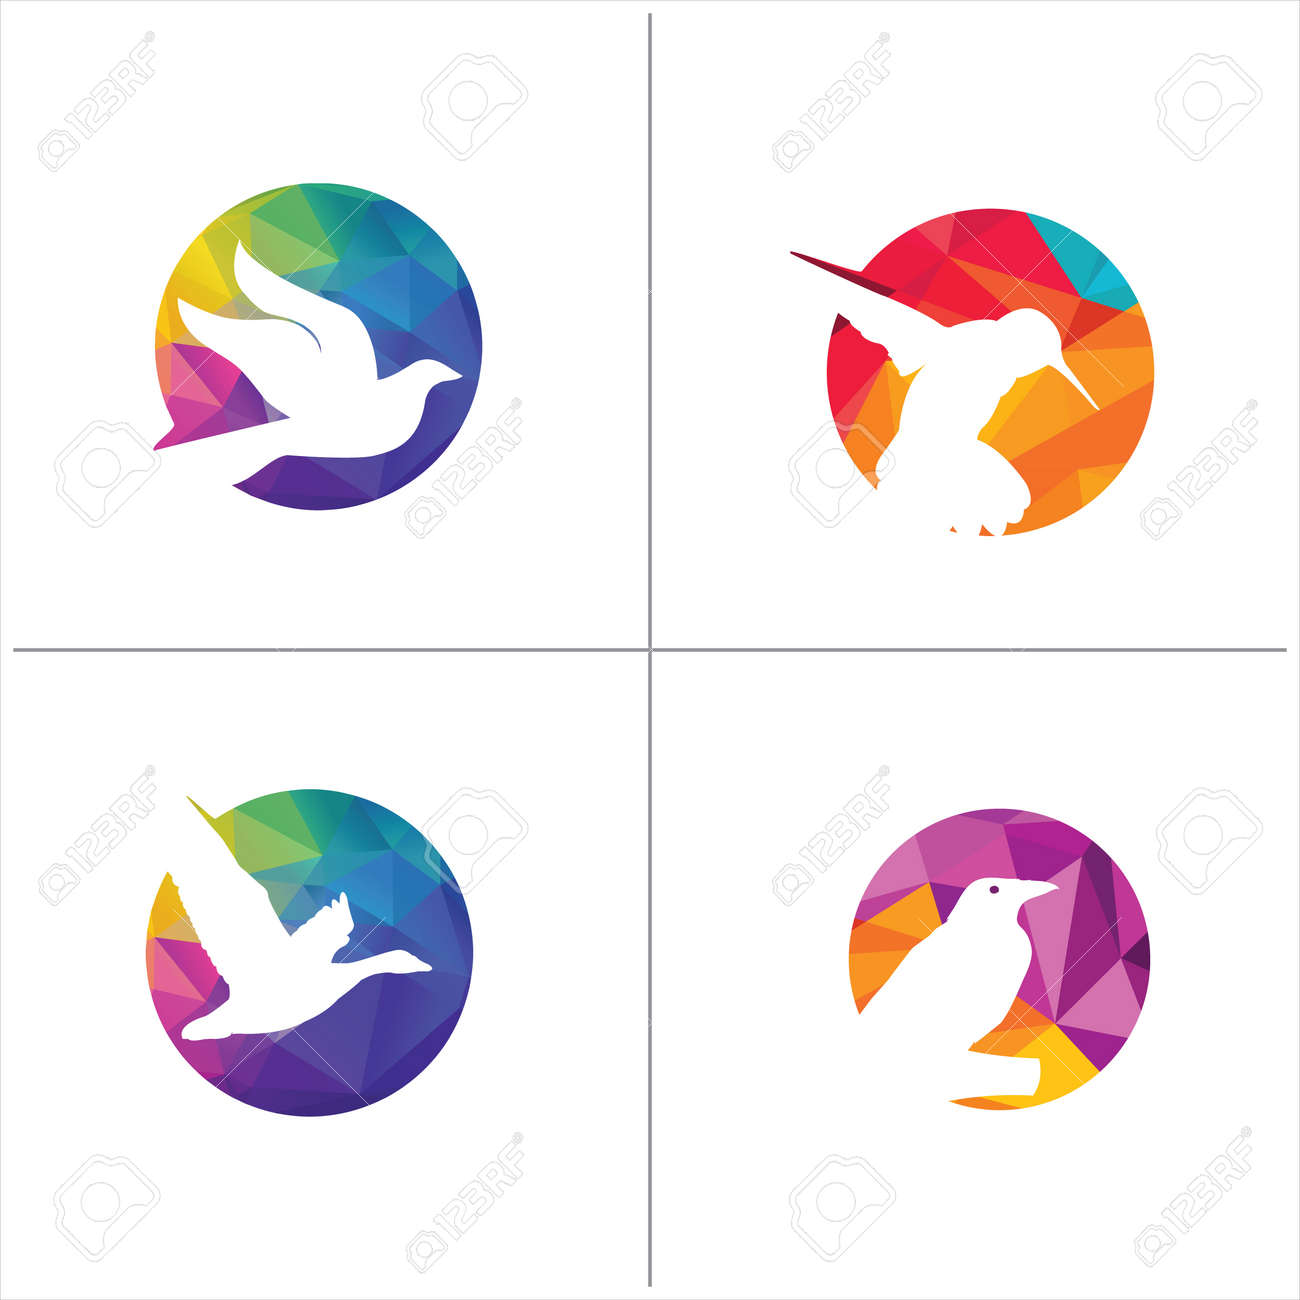 Colorful Birds Vector Logo Design Freedom Happiness Fly In